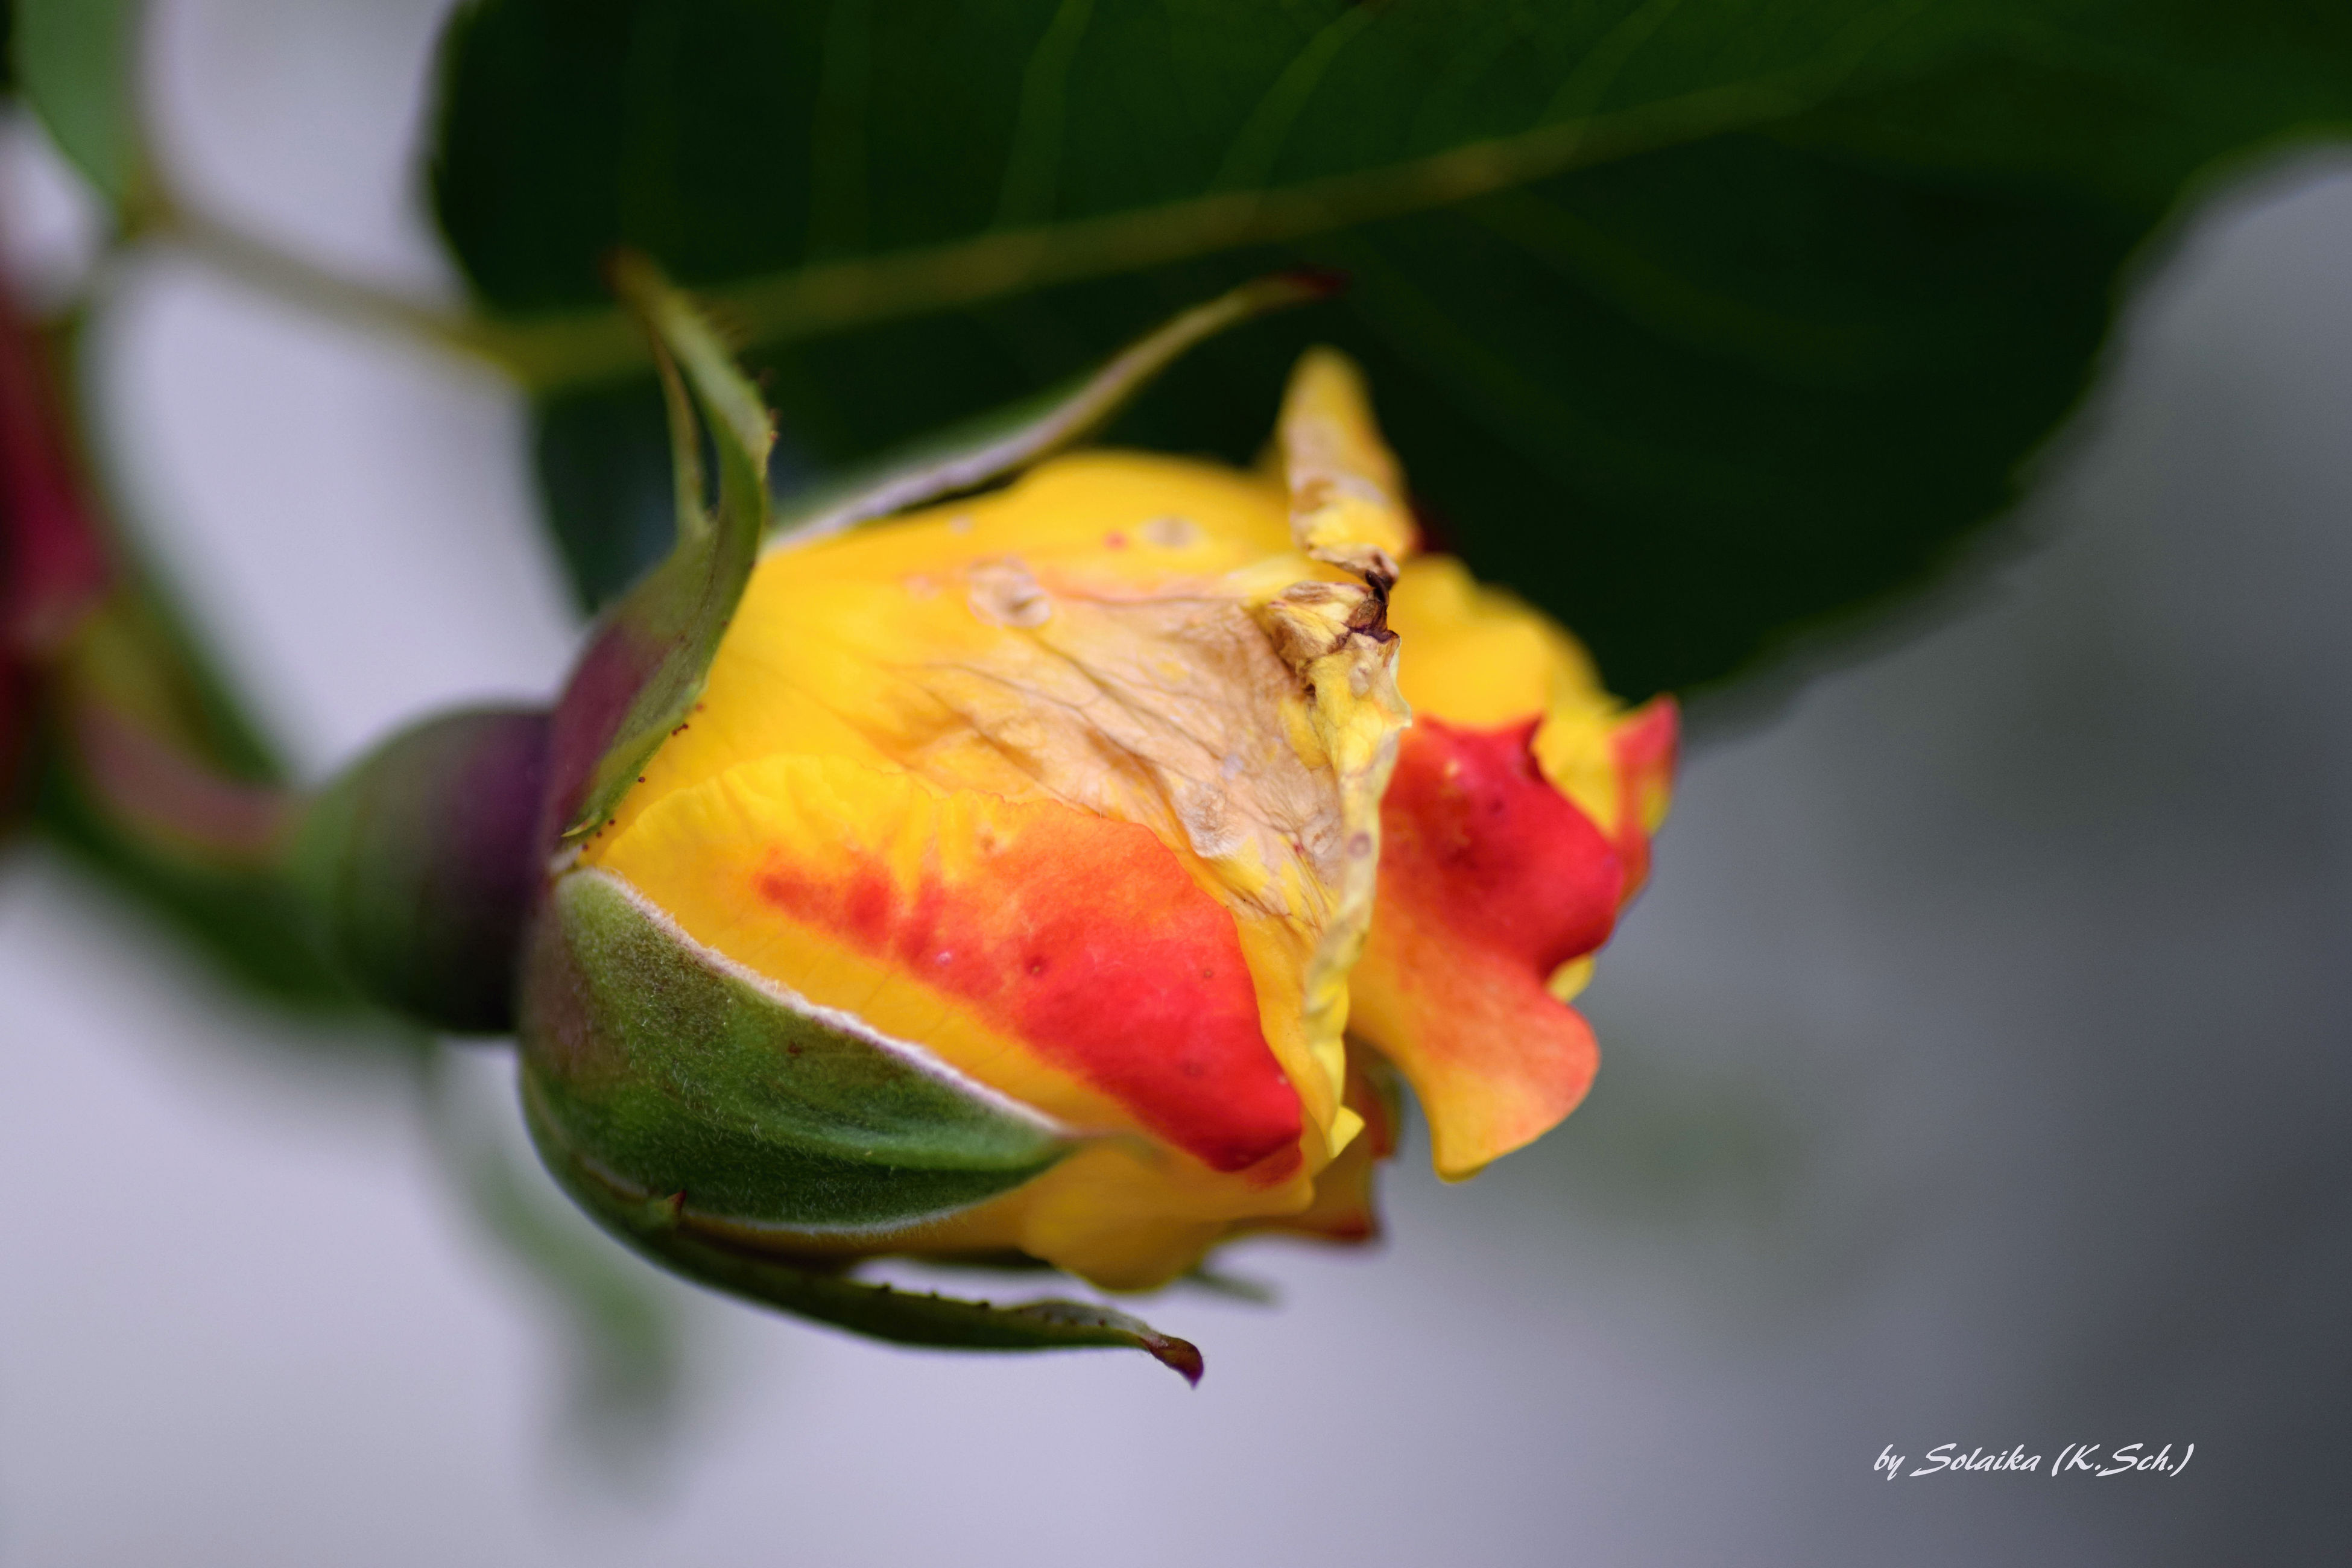 close-up, flower, fragility, leaf, petal, focus on foreground, growth, beauty in nature, freshness, nature, plant, flower head, selective focus, season, bud, yellow, stem, leaf vein, rose - flower, botany